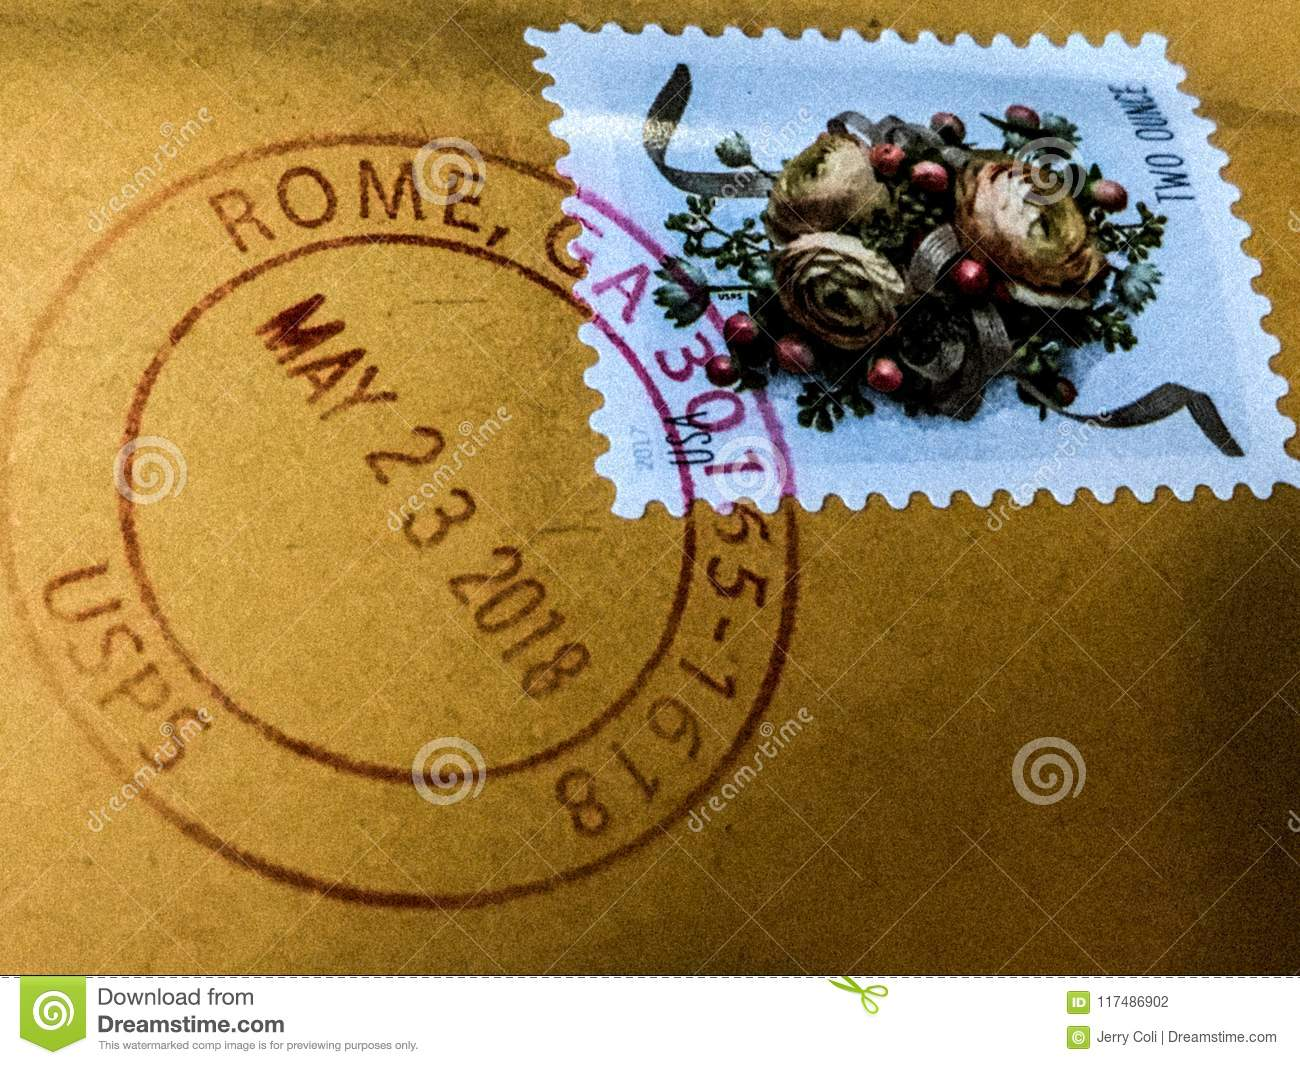 Canceled Postage Stamp from Rome, Georgia